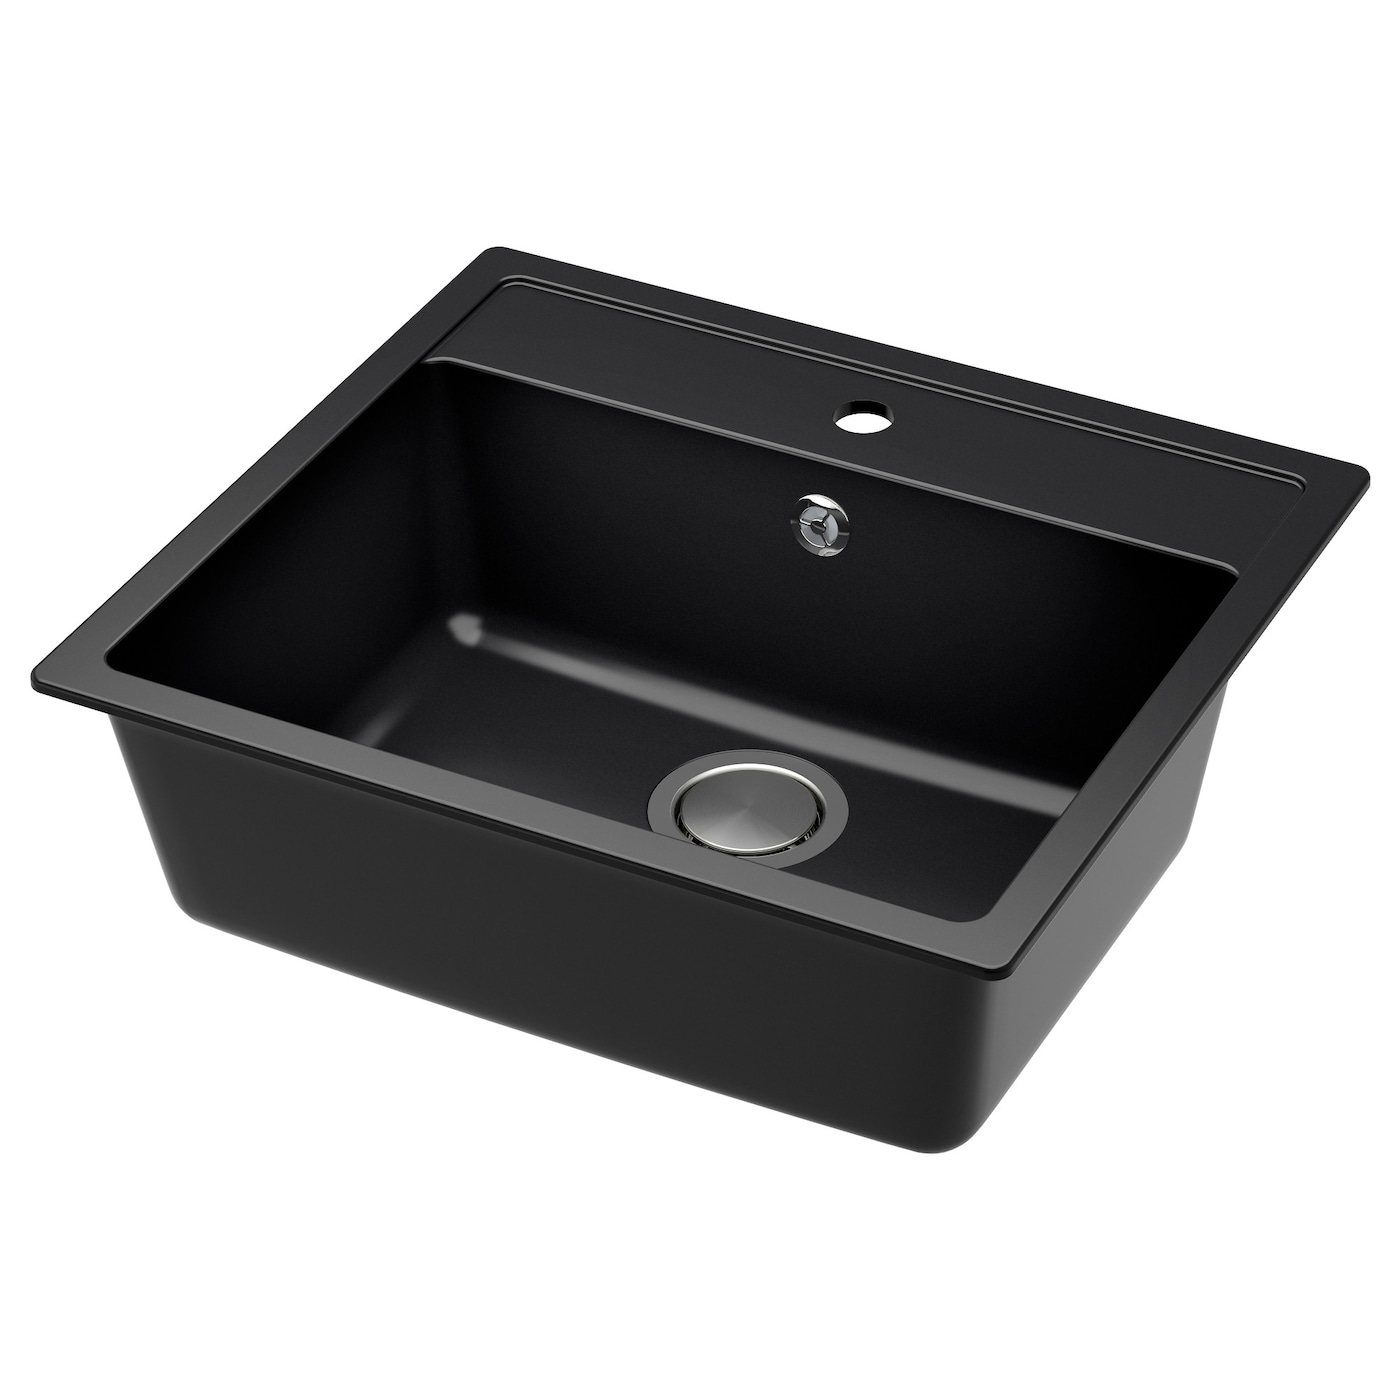 Ikea hällviken inset sink 1 bowl 25 year guarantee read about the terms in